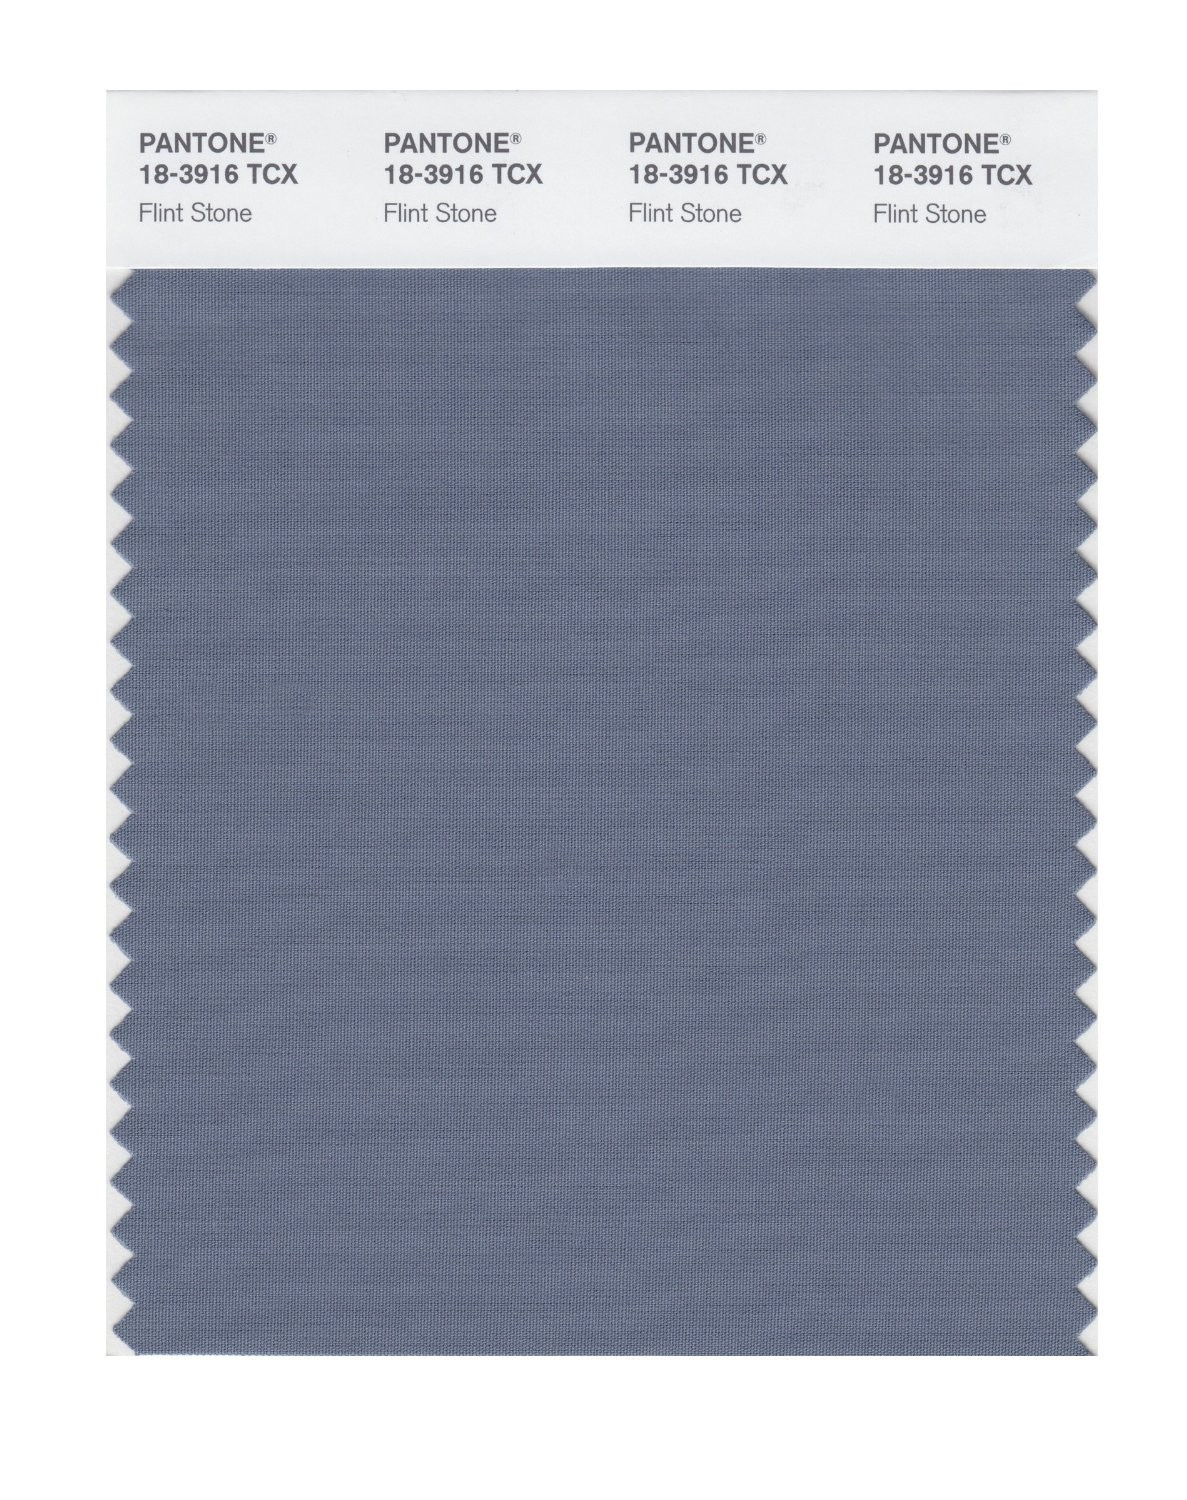 Pantone 18-3916 TCX Swatch Card Flint Stone